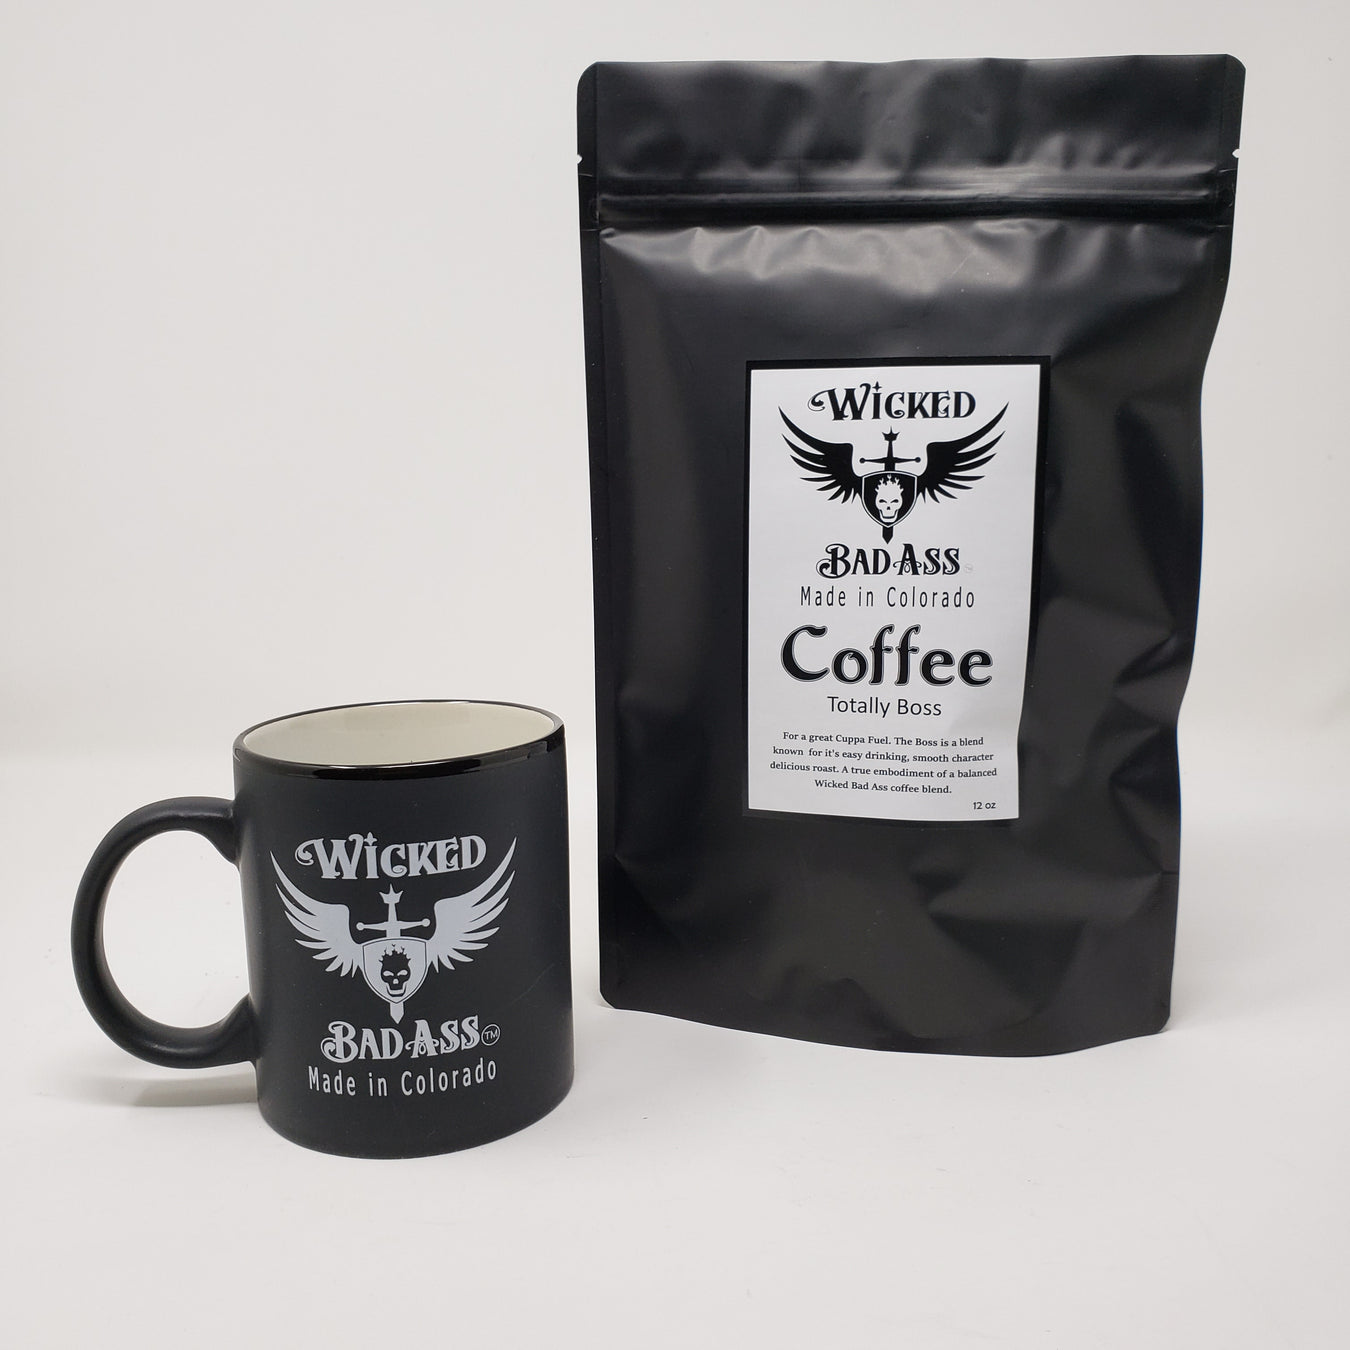 Wicked Bad Ass Coffee